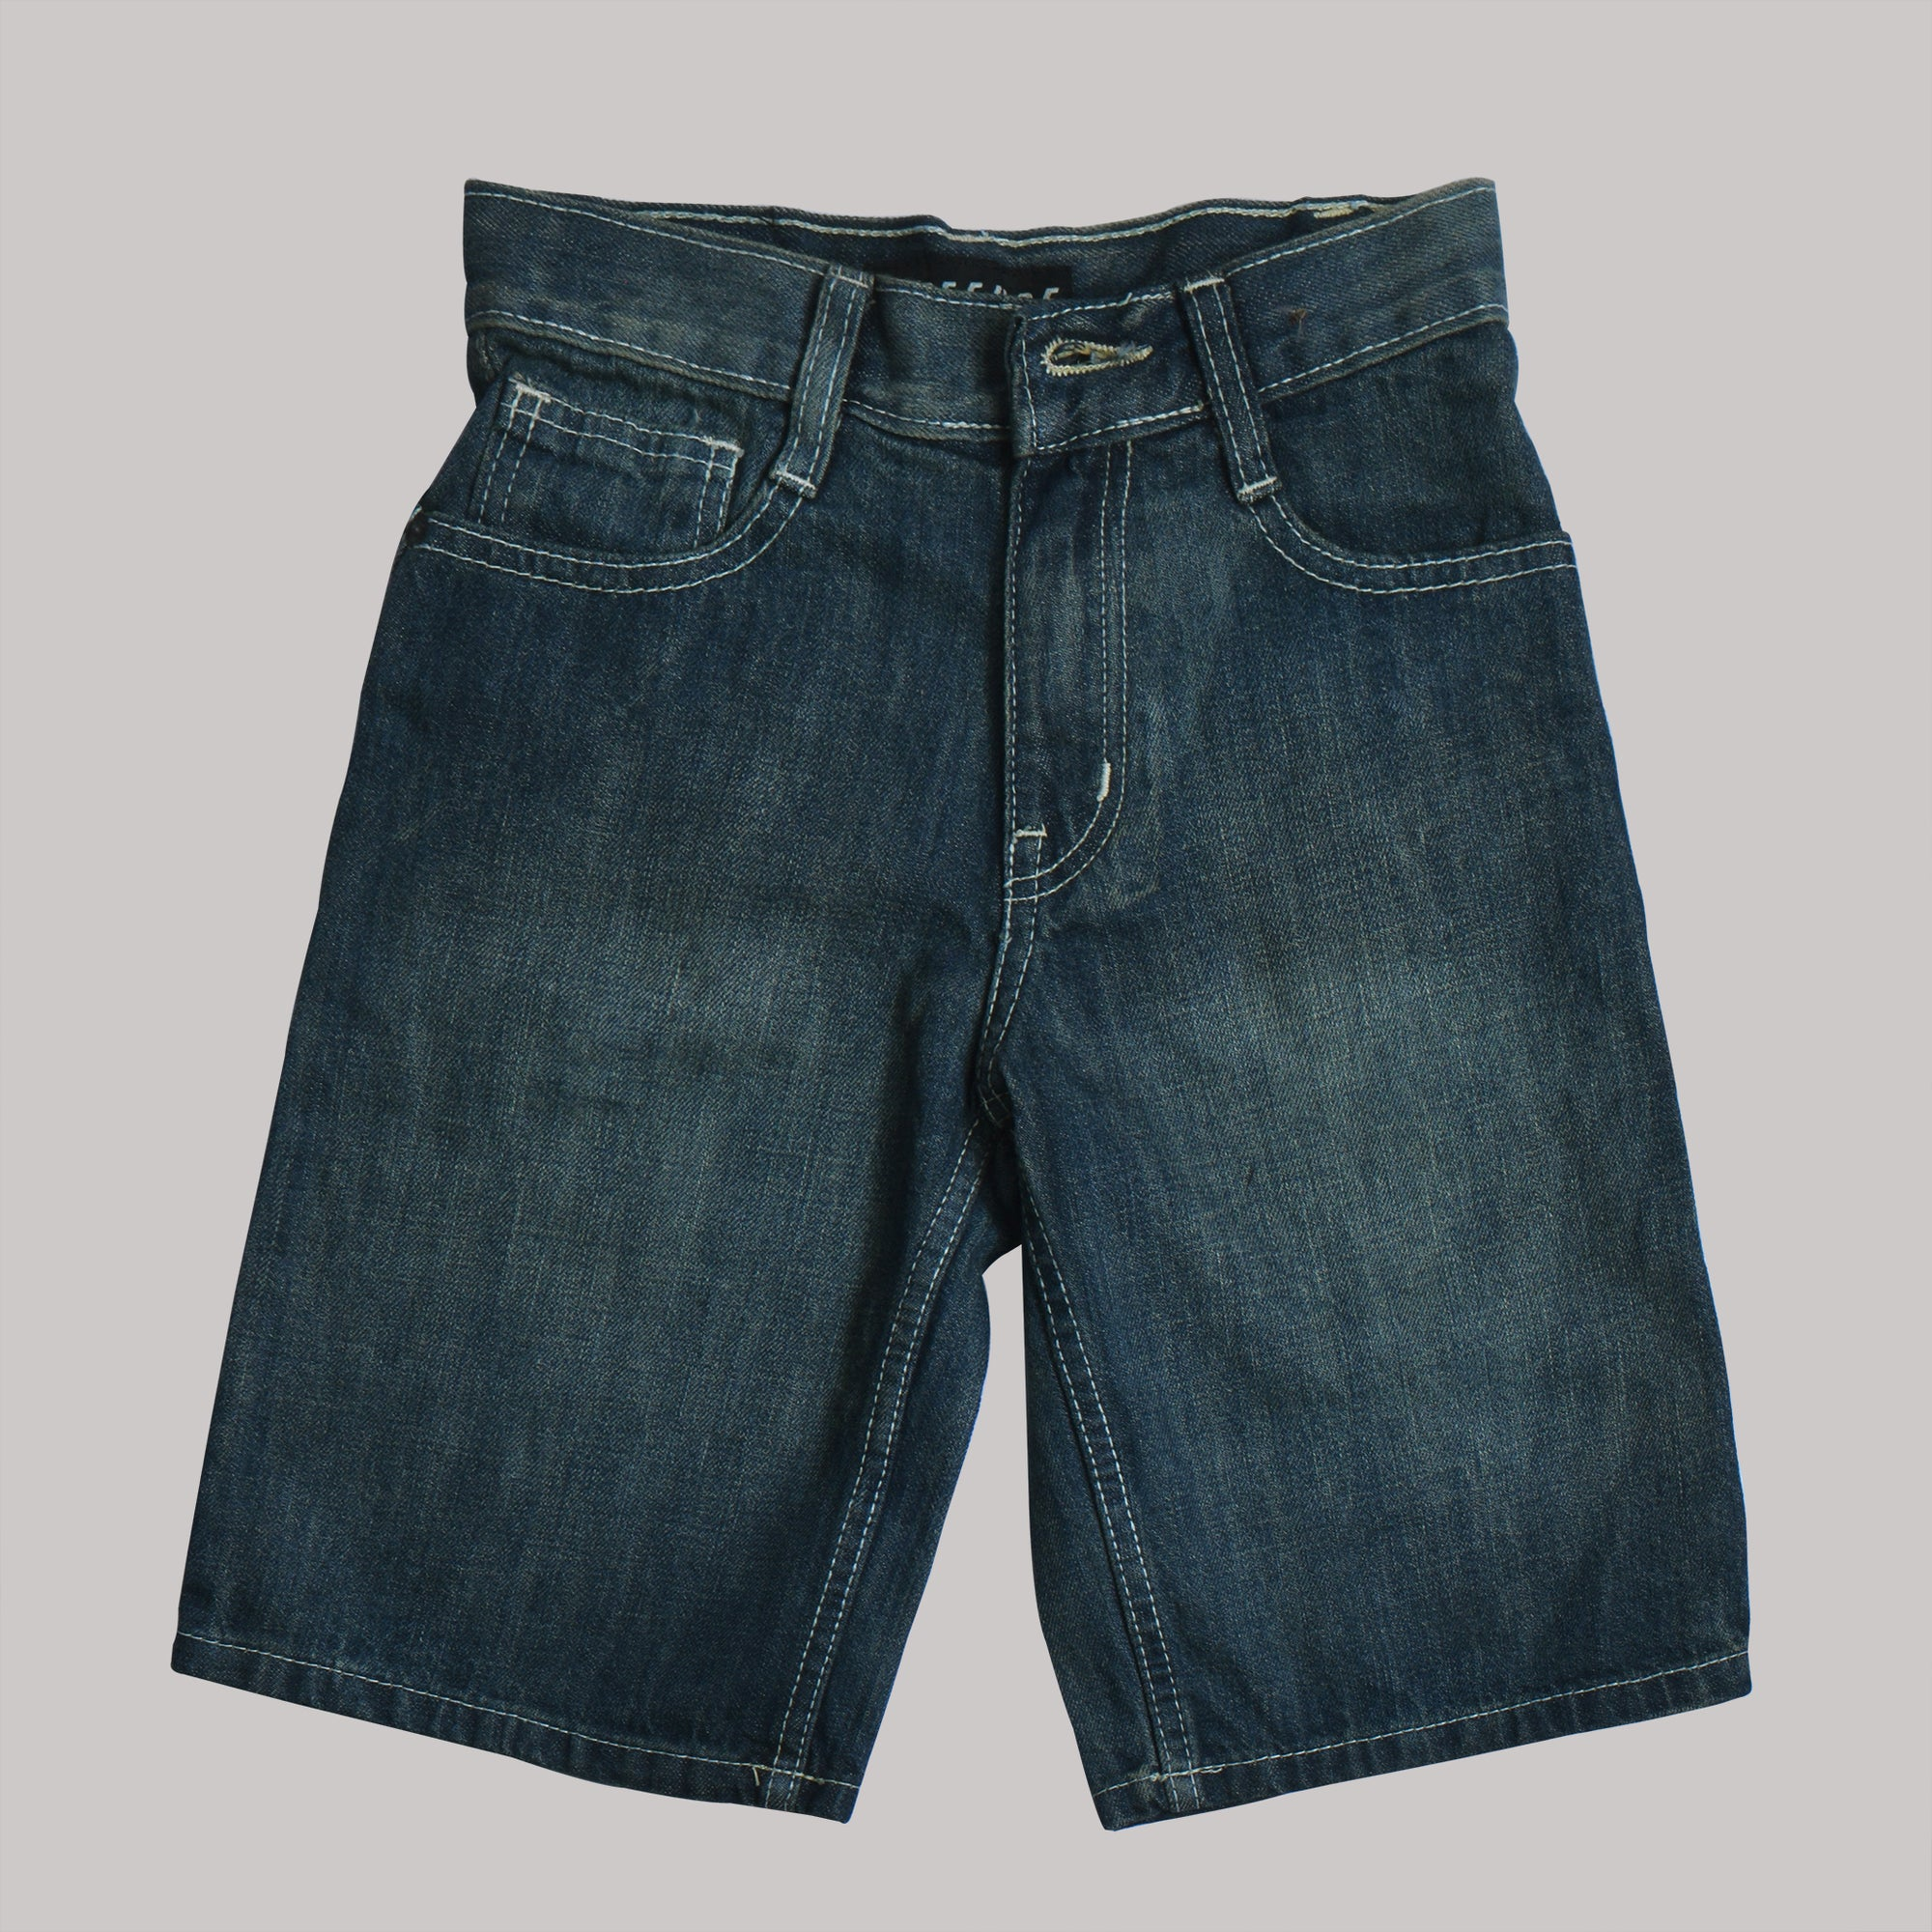 Refuse Denim Short For Kids-Dark Blue-SP537